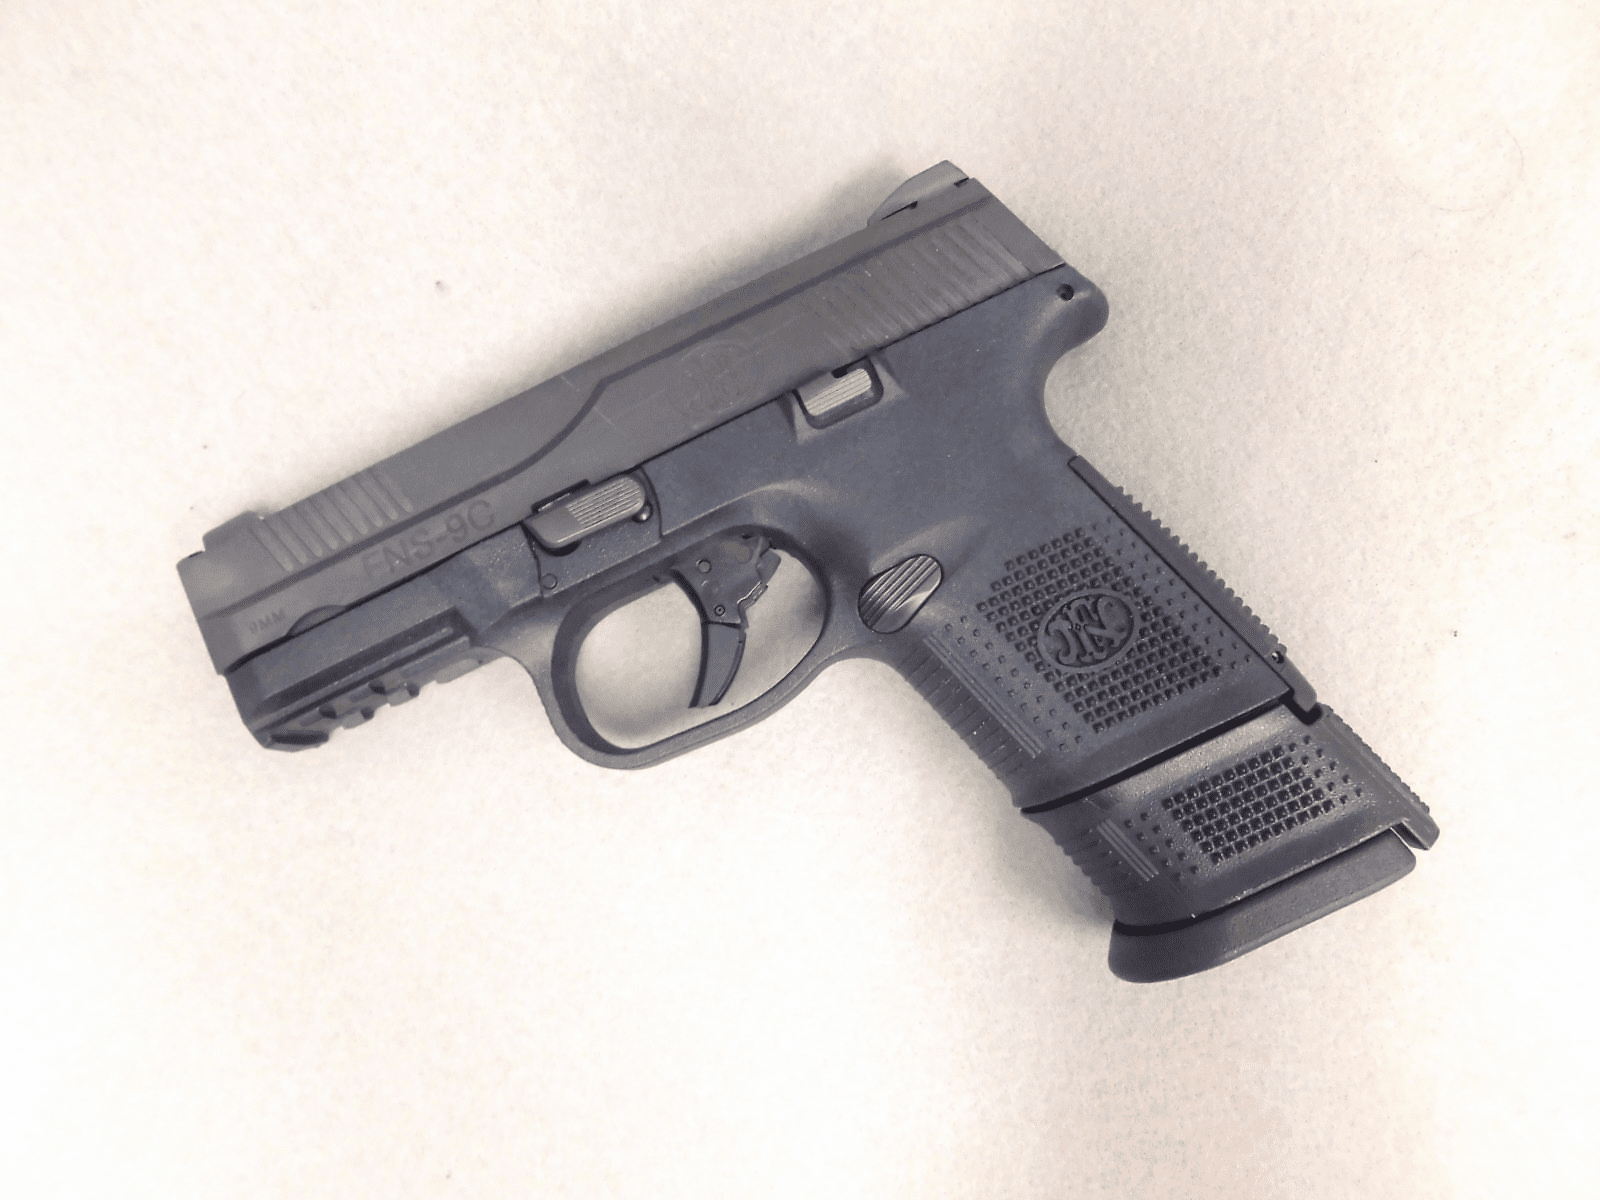 FN FNS-9 (9mm)